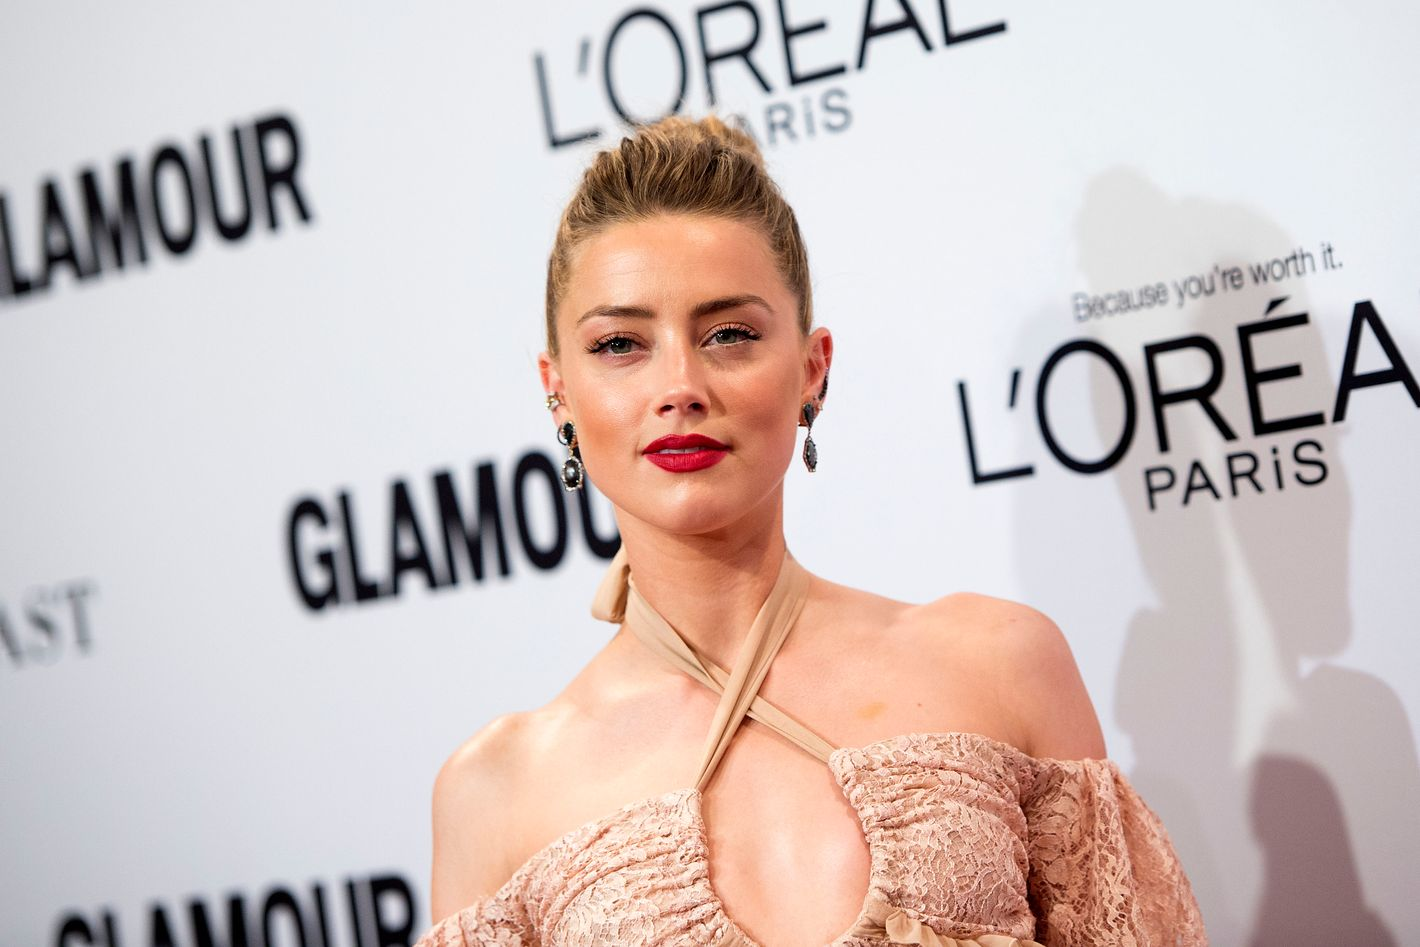 Forum on this topic: Bridal Beauty Buzz: Steal Amber Heard's Wedding-Worthy , bridal-beauty-buzz-steal-amber-heards-wedding-worthy/